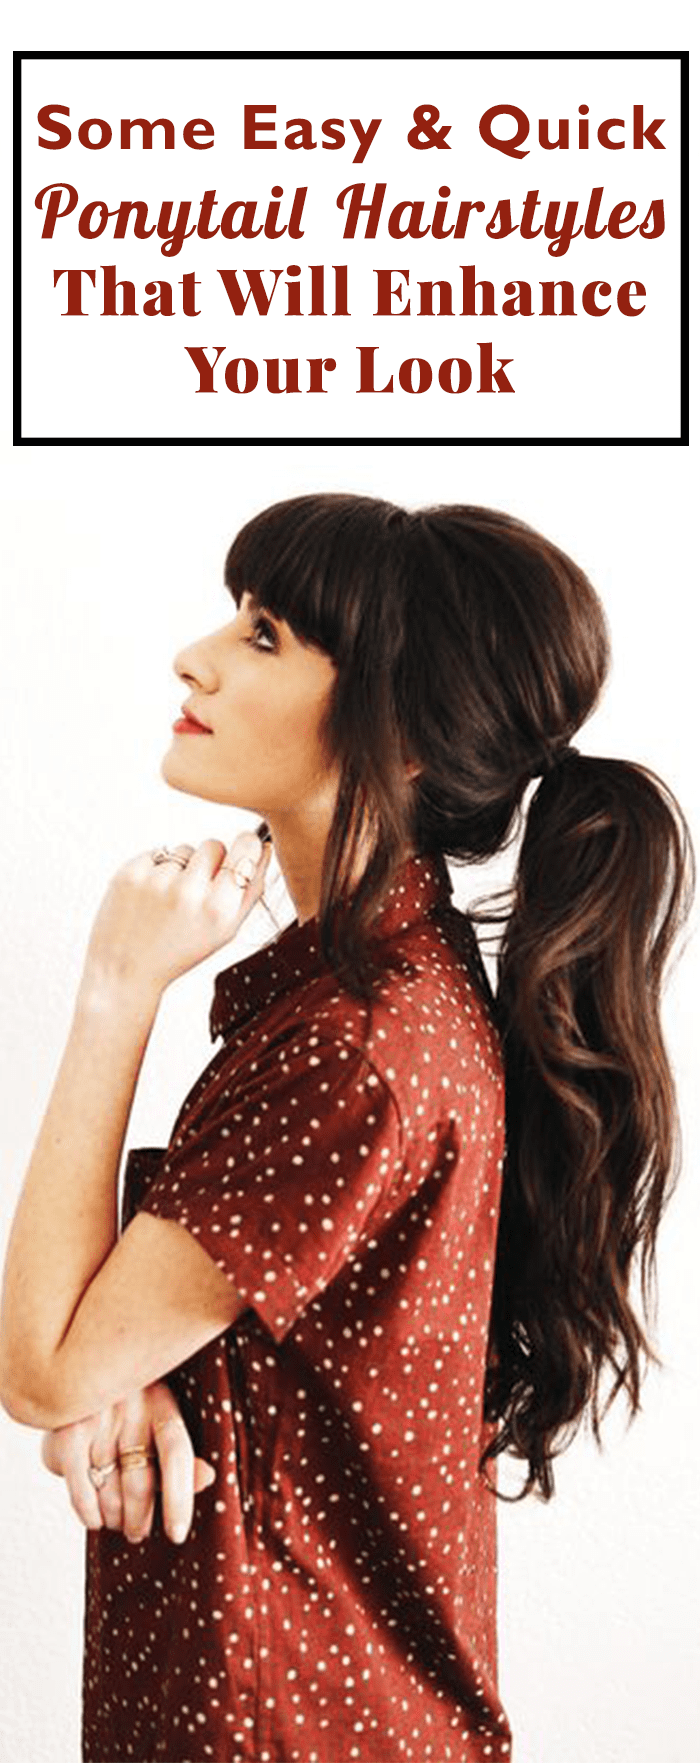 Some Easy & Quick Ponytail Hairstyles